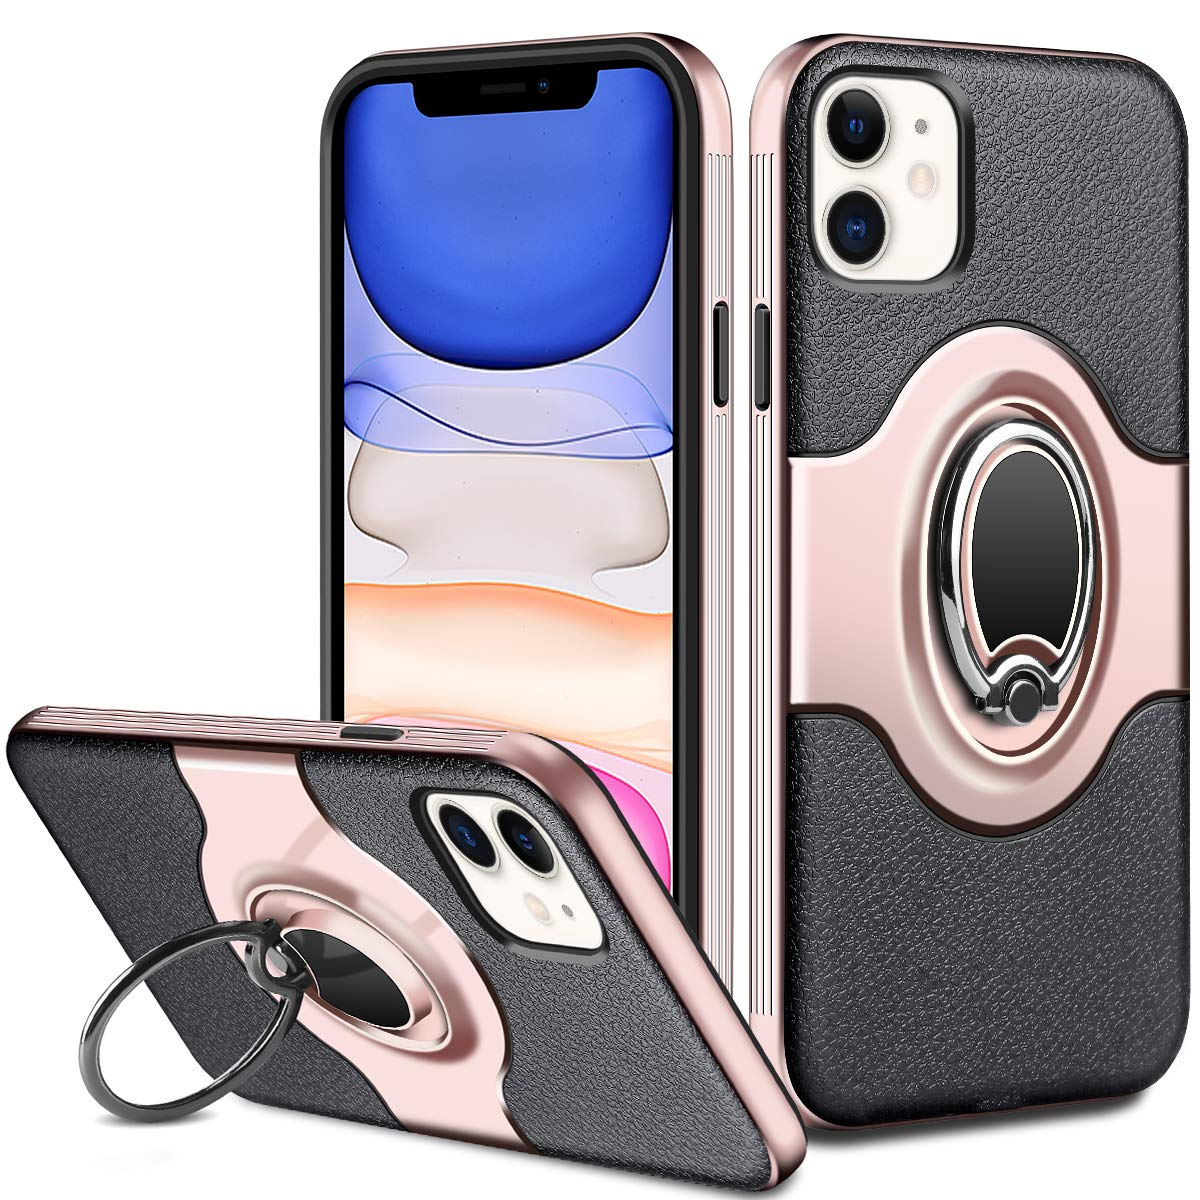 ELOVEN Case for iPhone 11 Case with Ring Holder 360 Degree Rotation Stand Work with Car Mount Ultra Slim Fit Soft TPU Shockproof Non-Slip Hybrid Dual Layer Protective Case for iPhone 11, Rose Gold